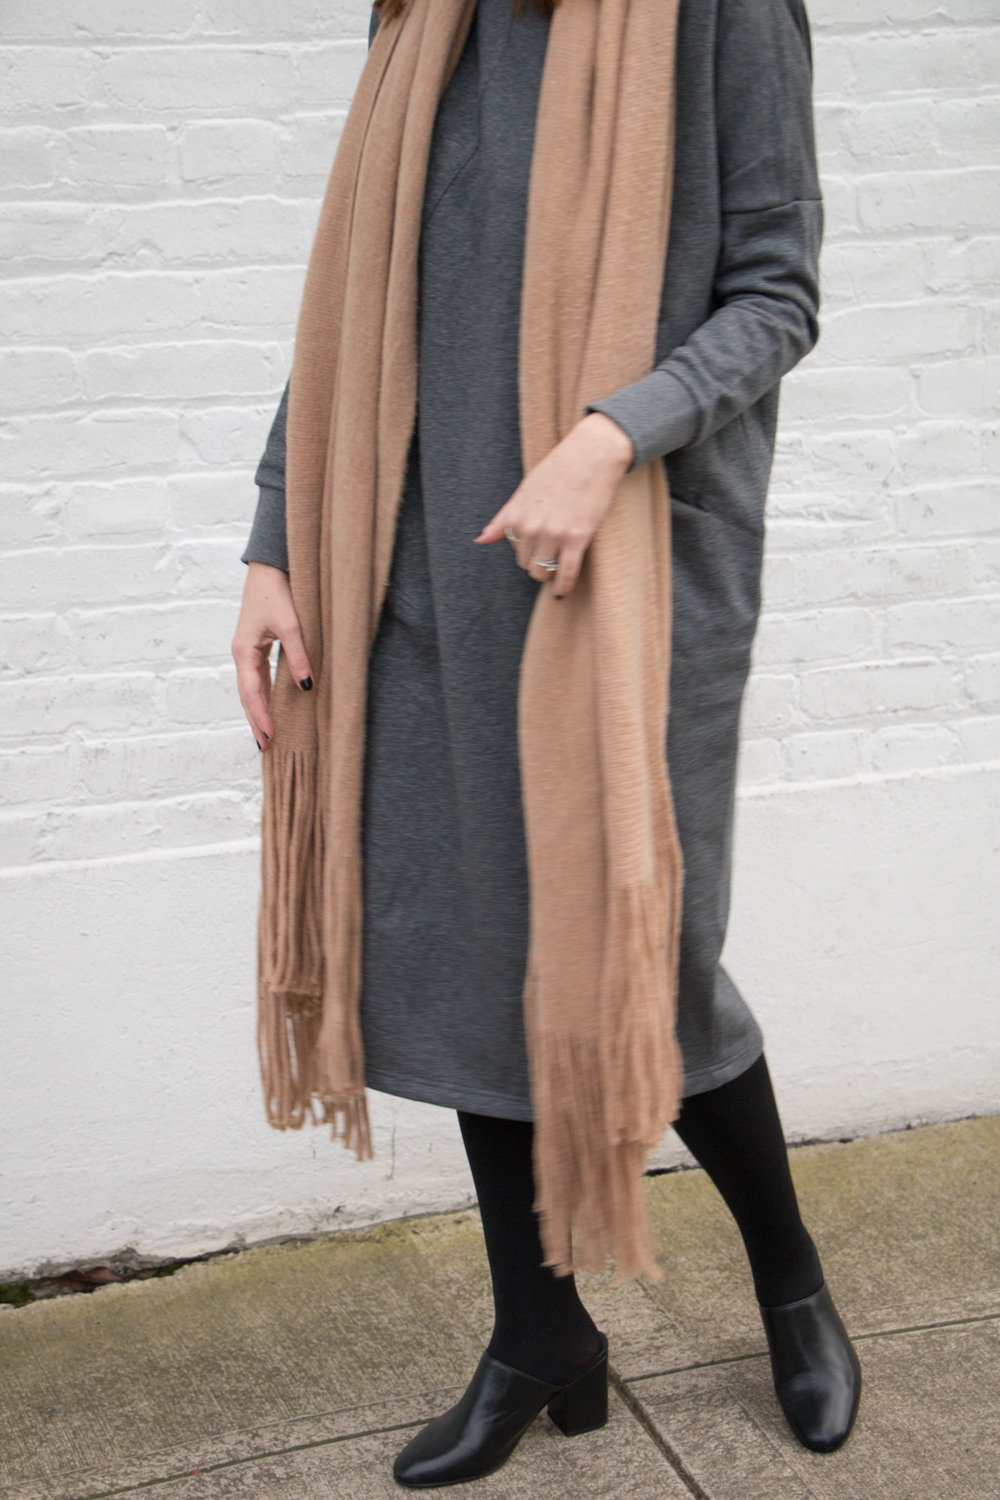 Grey Dress and Blush Scarf / Week of Ethical Capsule Wardrobe Outfits With Allison Karaba of The Thoughtful Closet